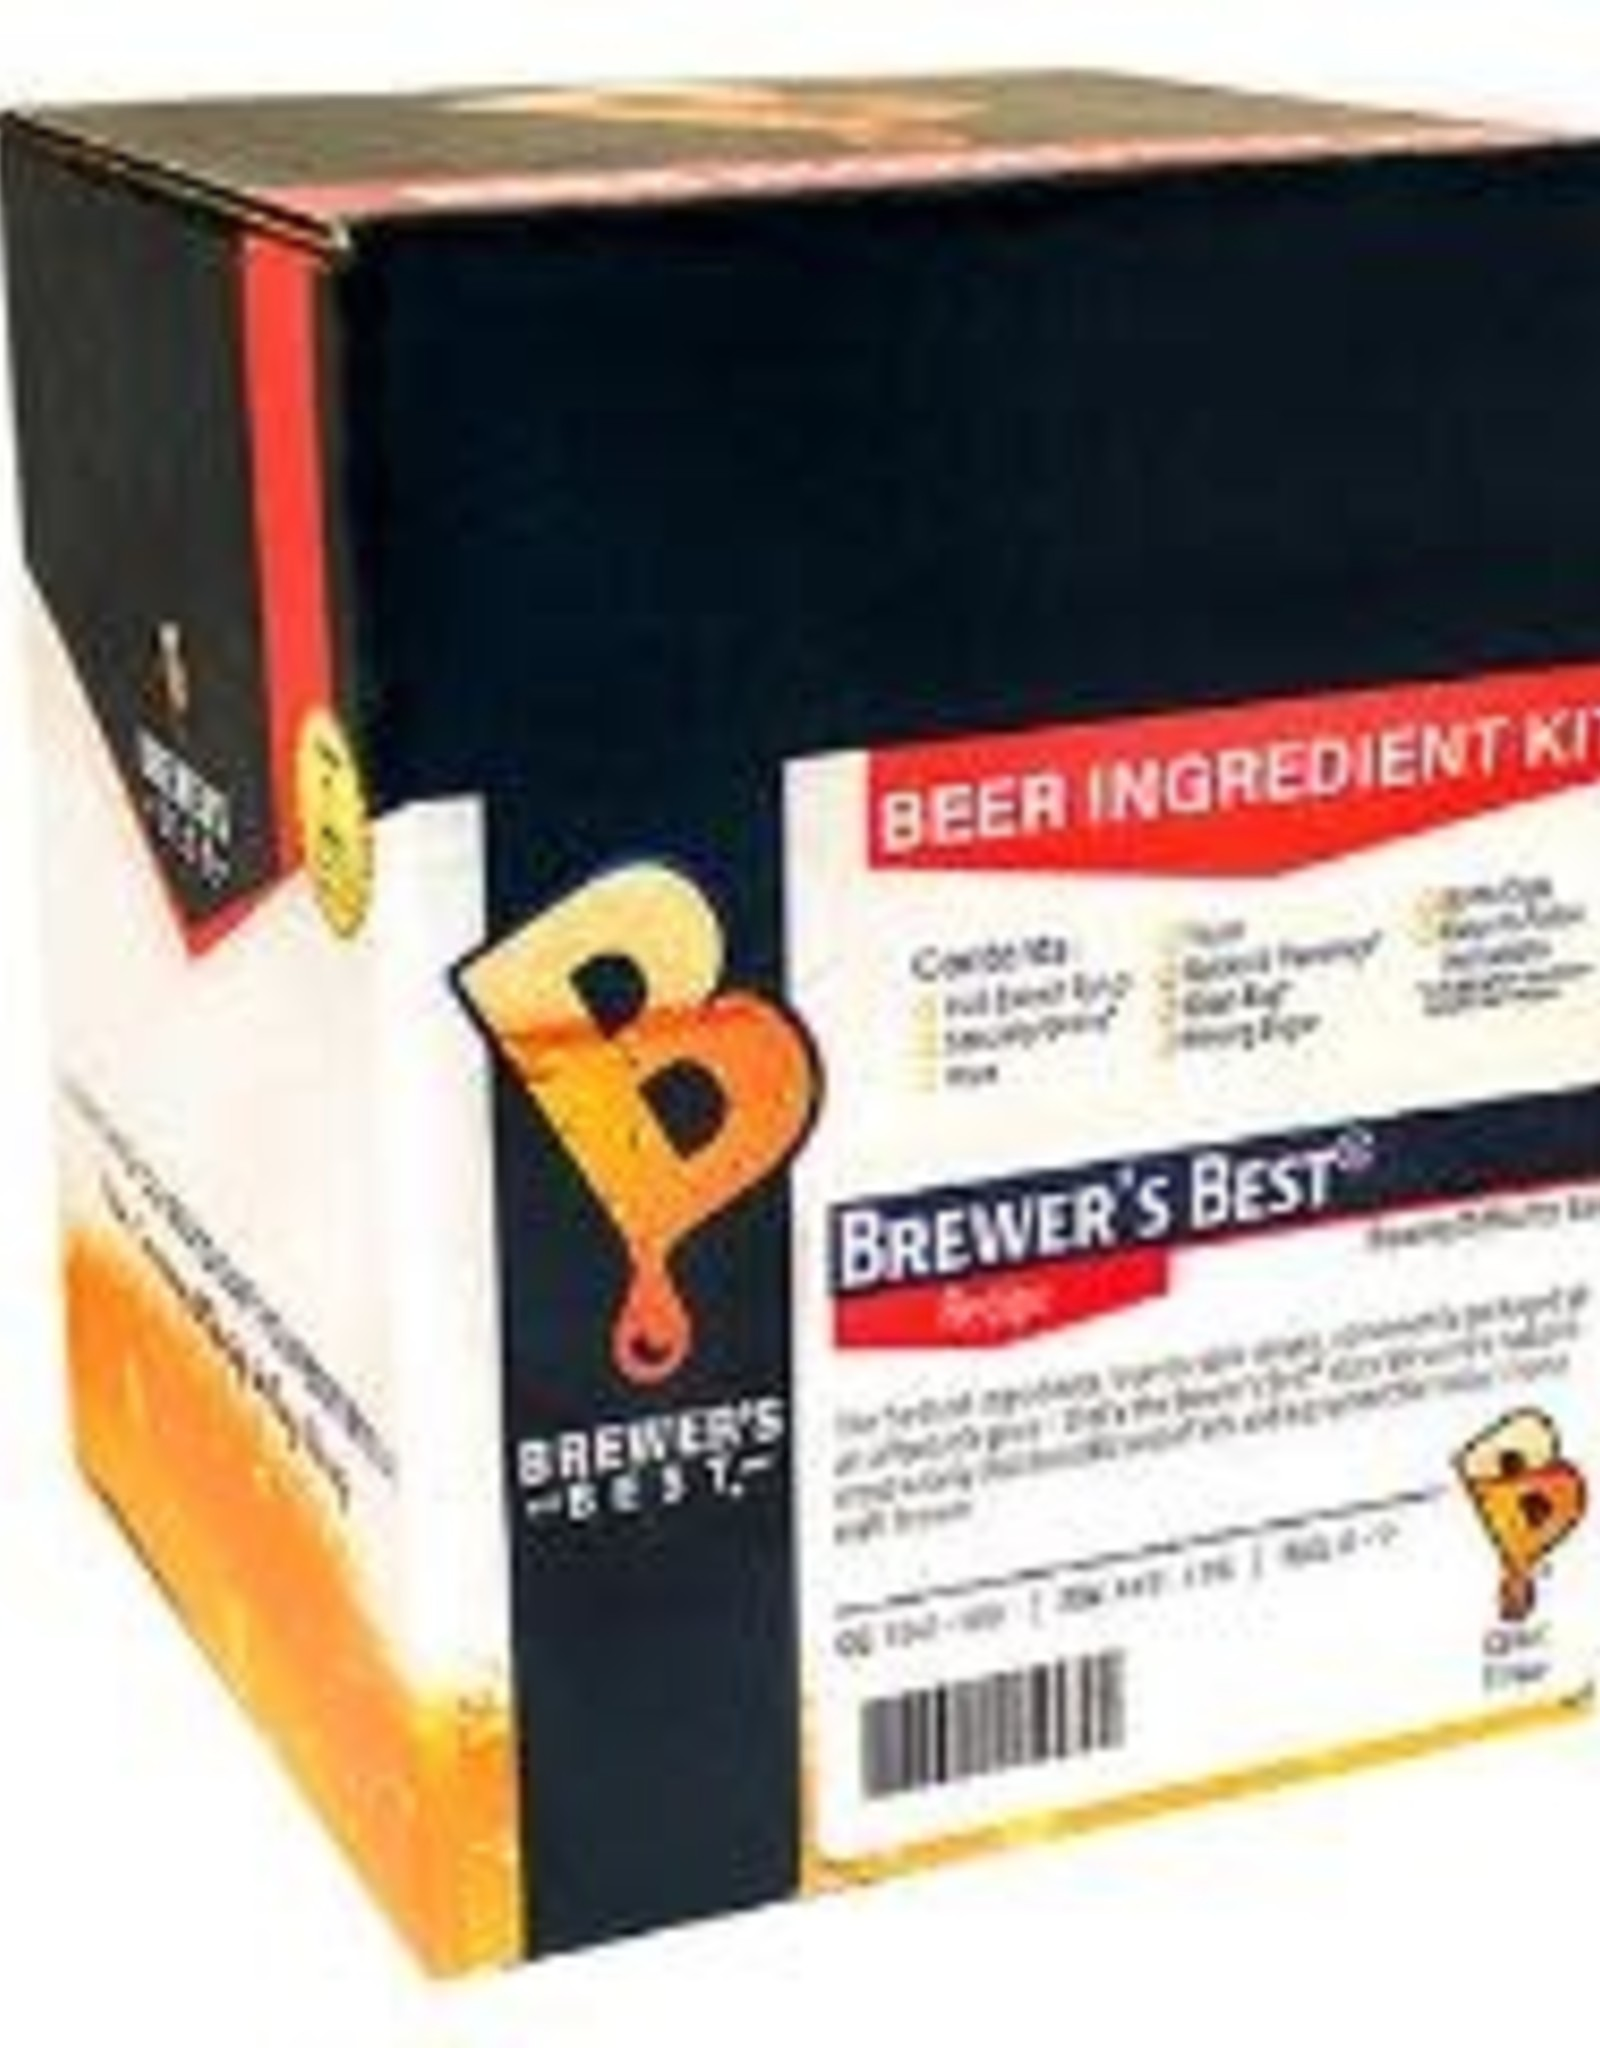 BREWER'S BEST BREWER'S BEST AMERICAN BROWN ALE 1GAL KIT